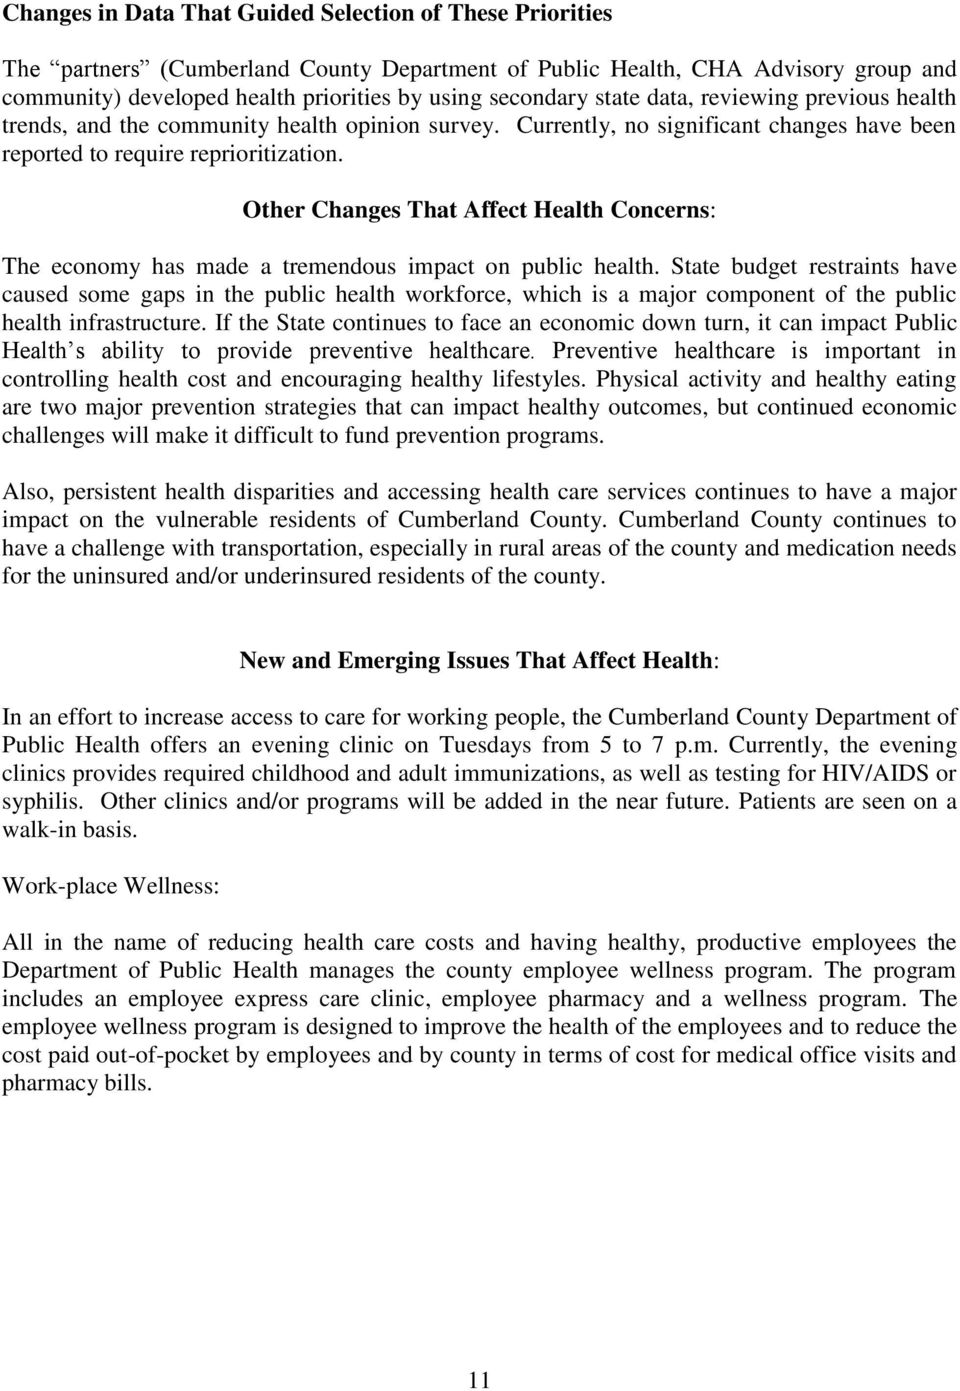 Other Changes That Affect Health Concerns: The economy has made a tremendous impact on public health.